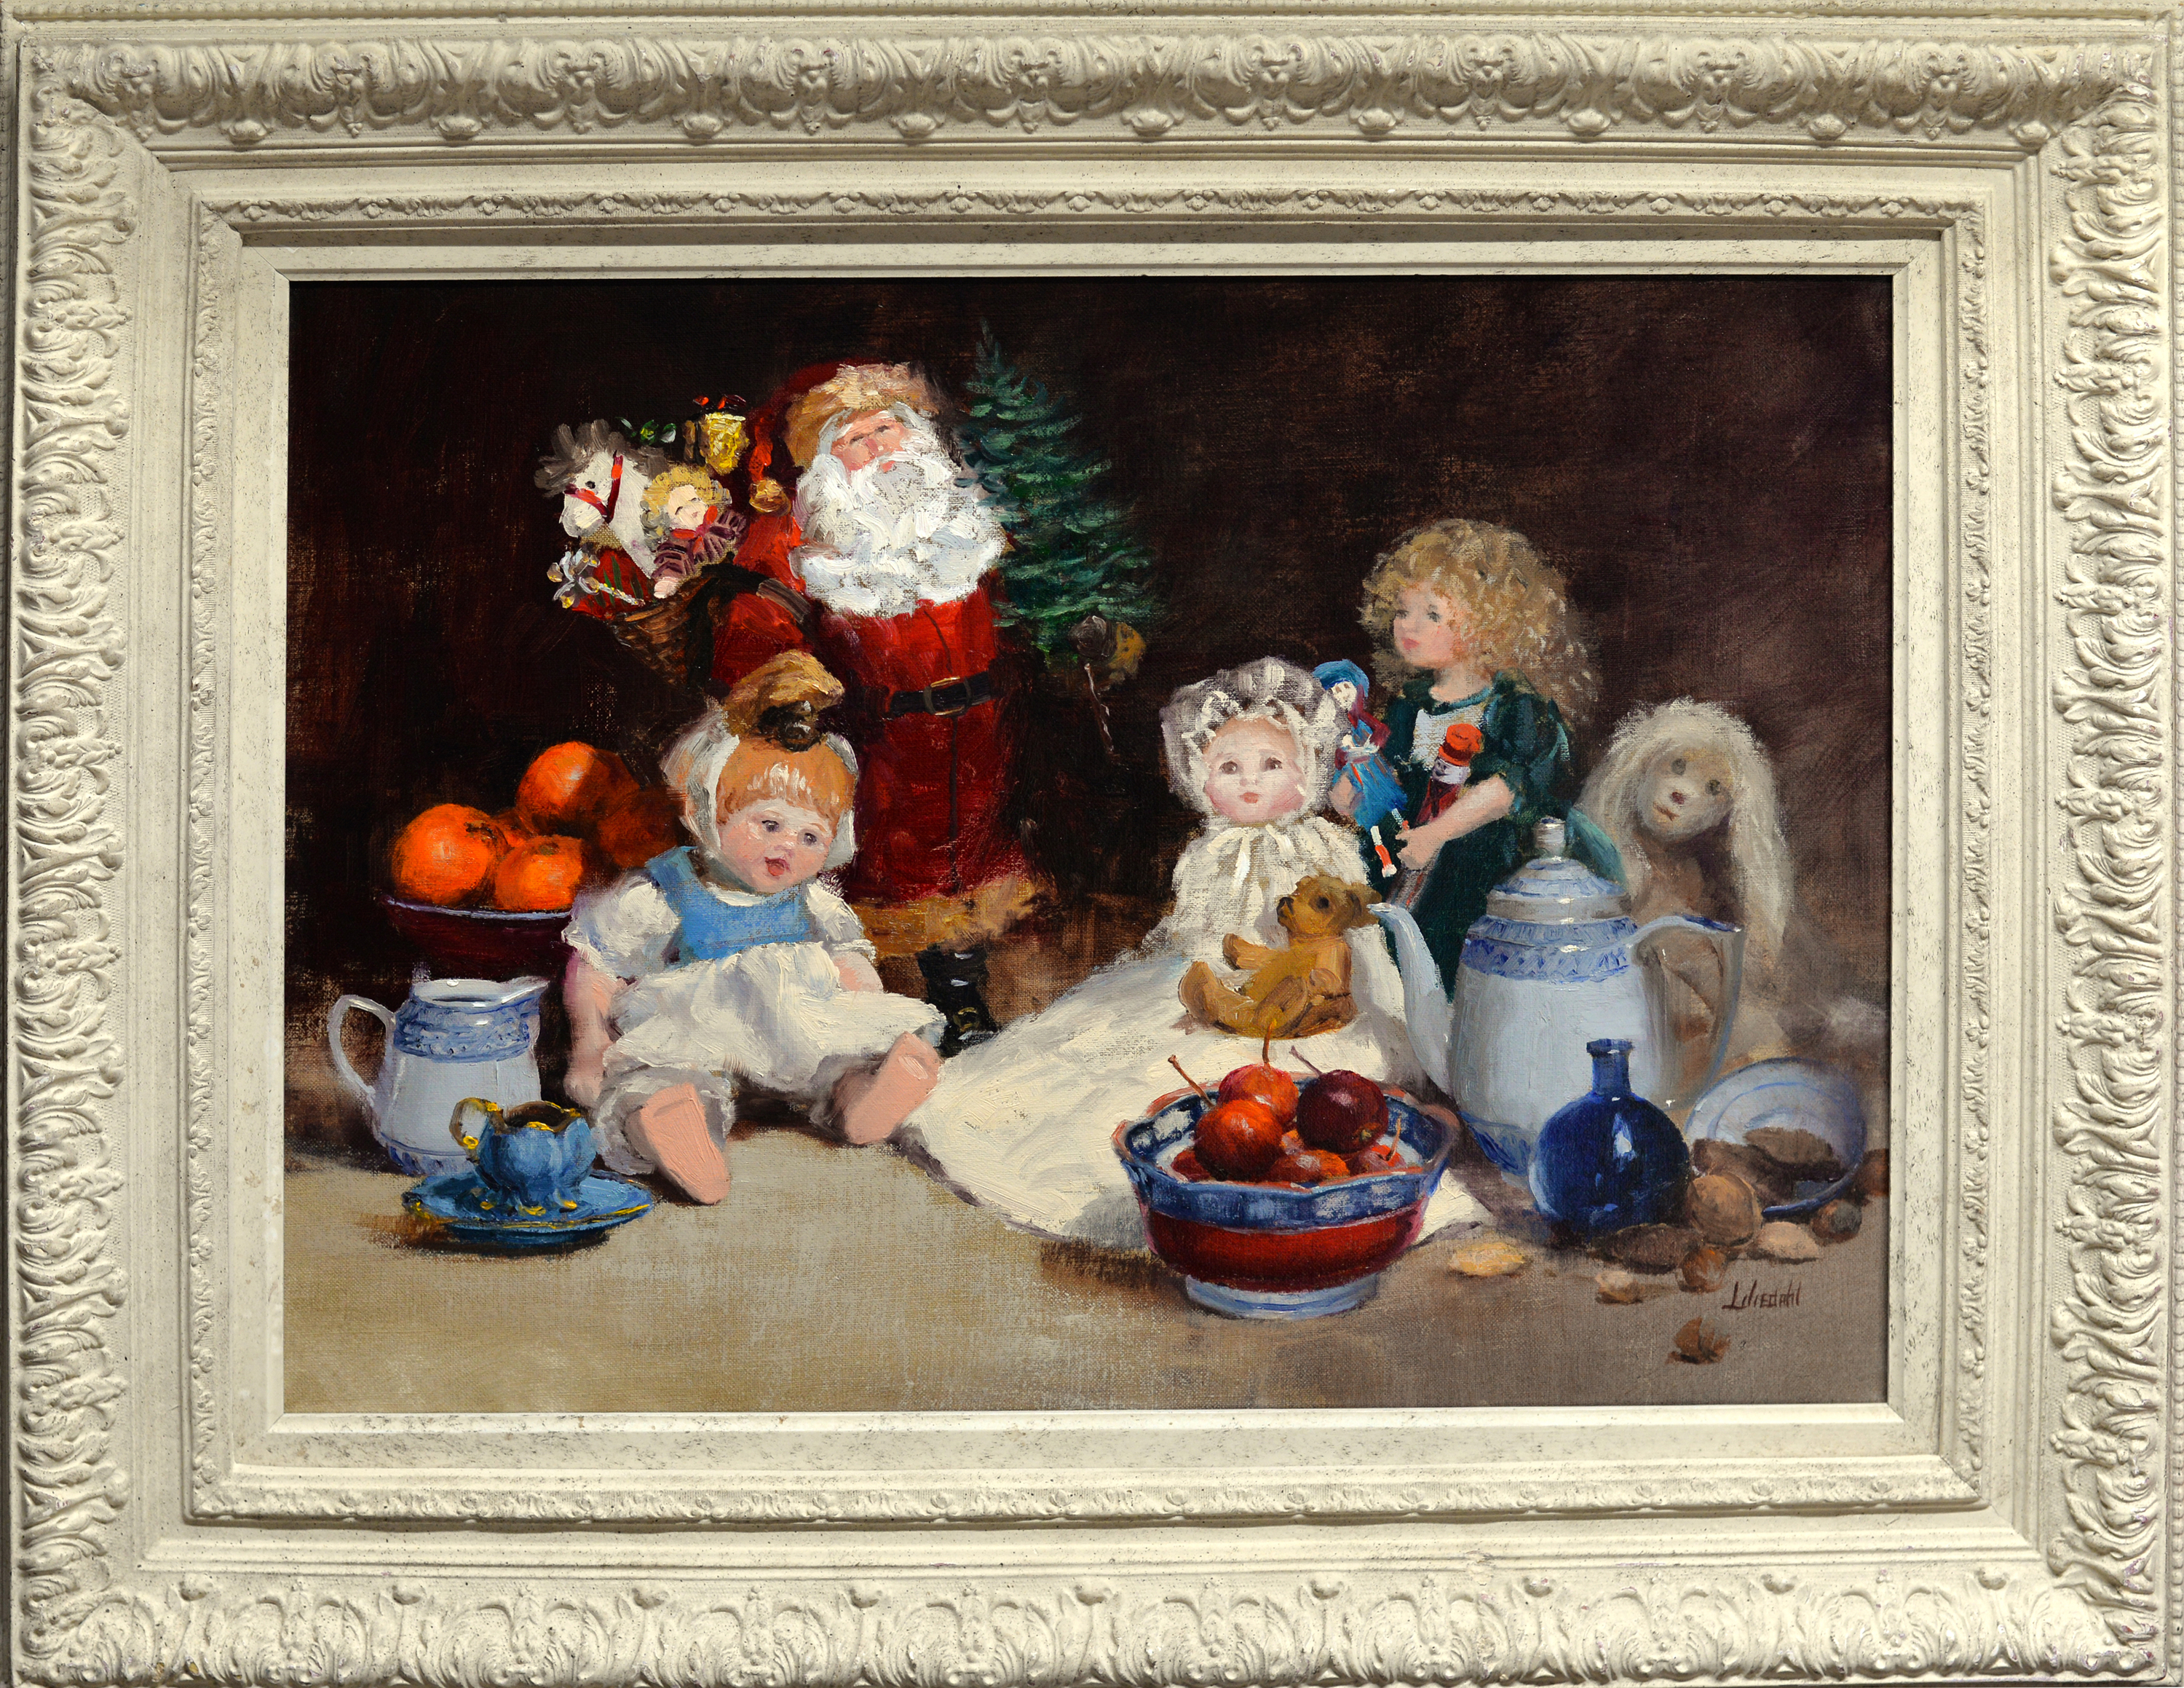 Christmas dolls original framed d610 d7psr3